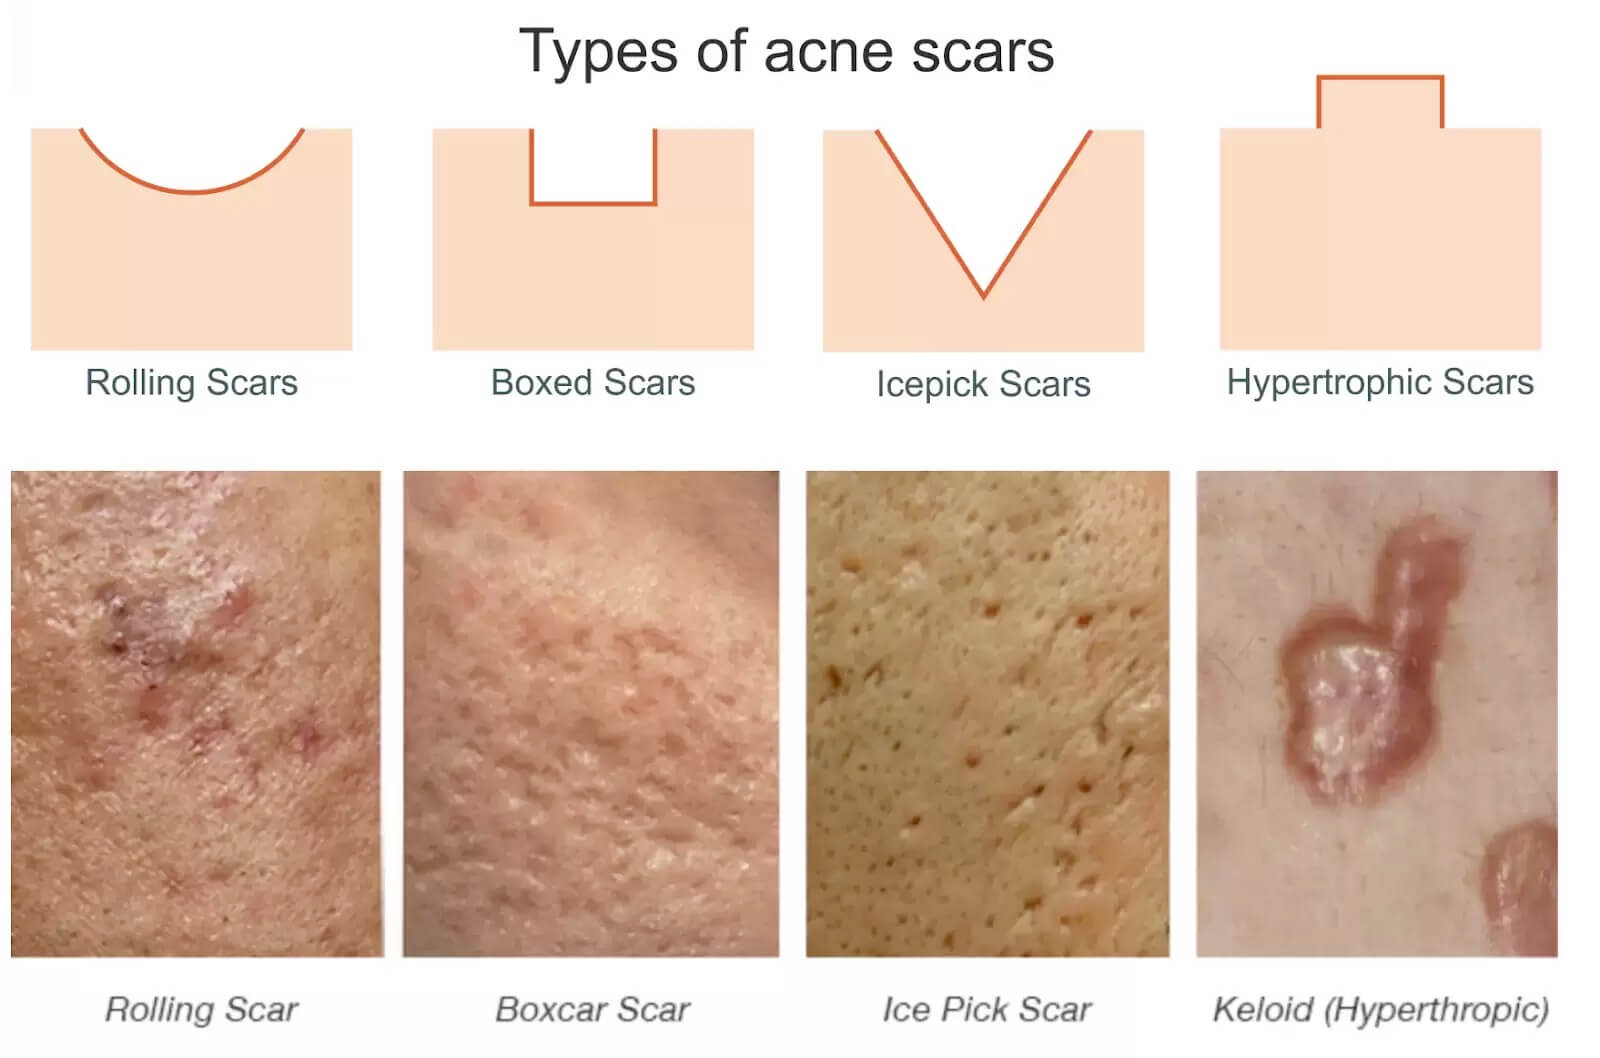 A graphic showing the difference between the 4 major types of acne scarring